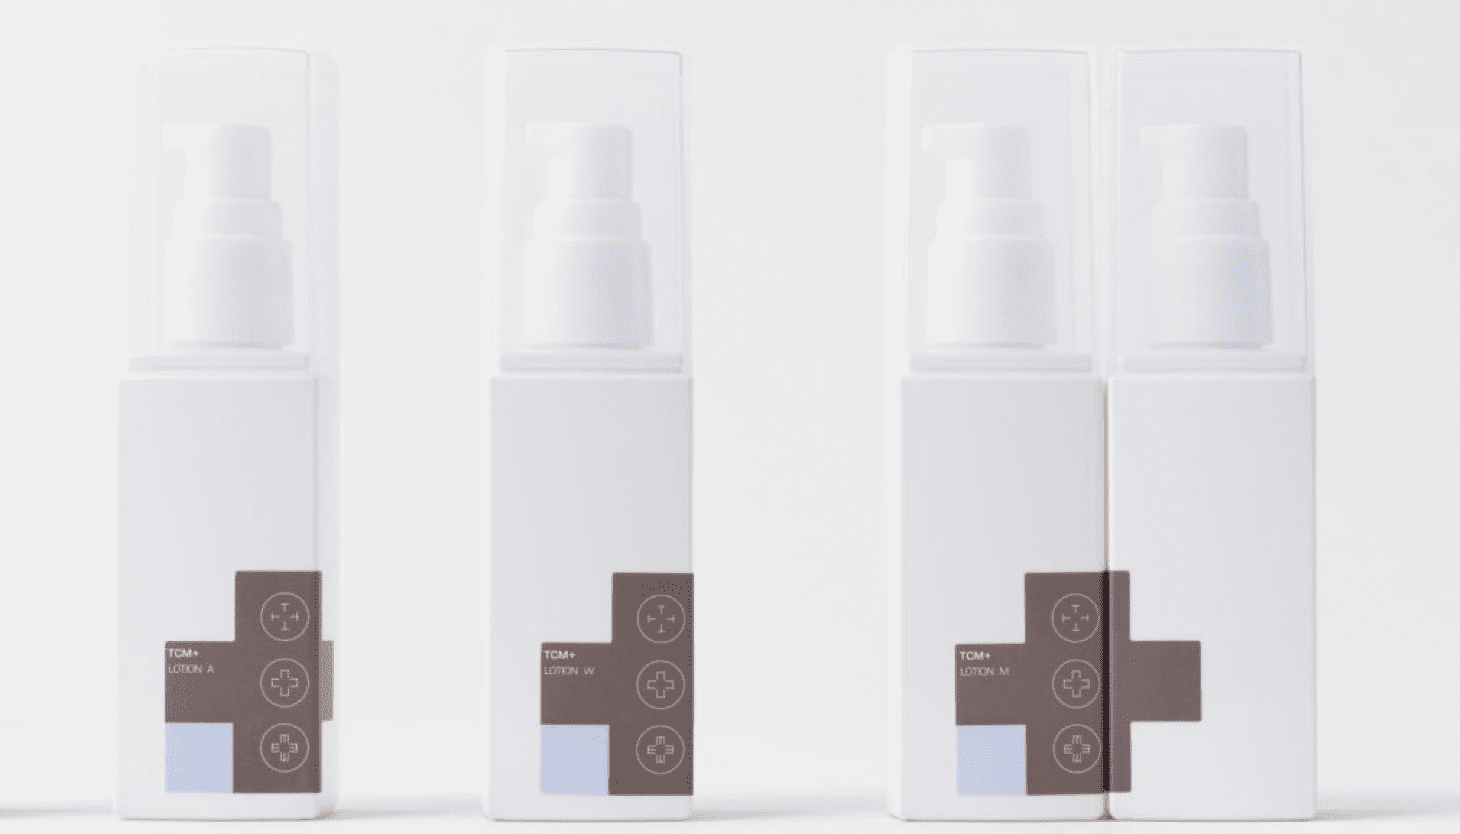 TCM skincare branded products